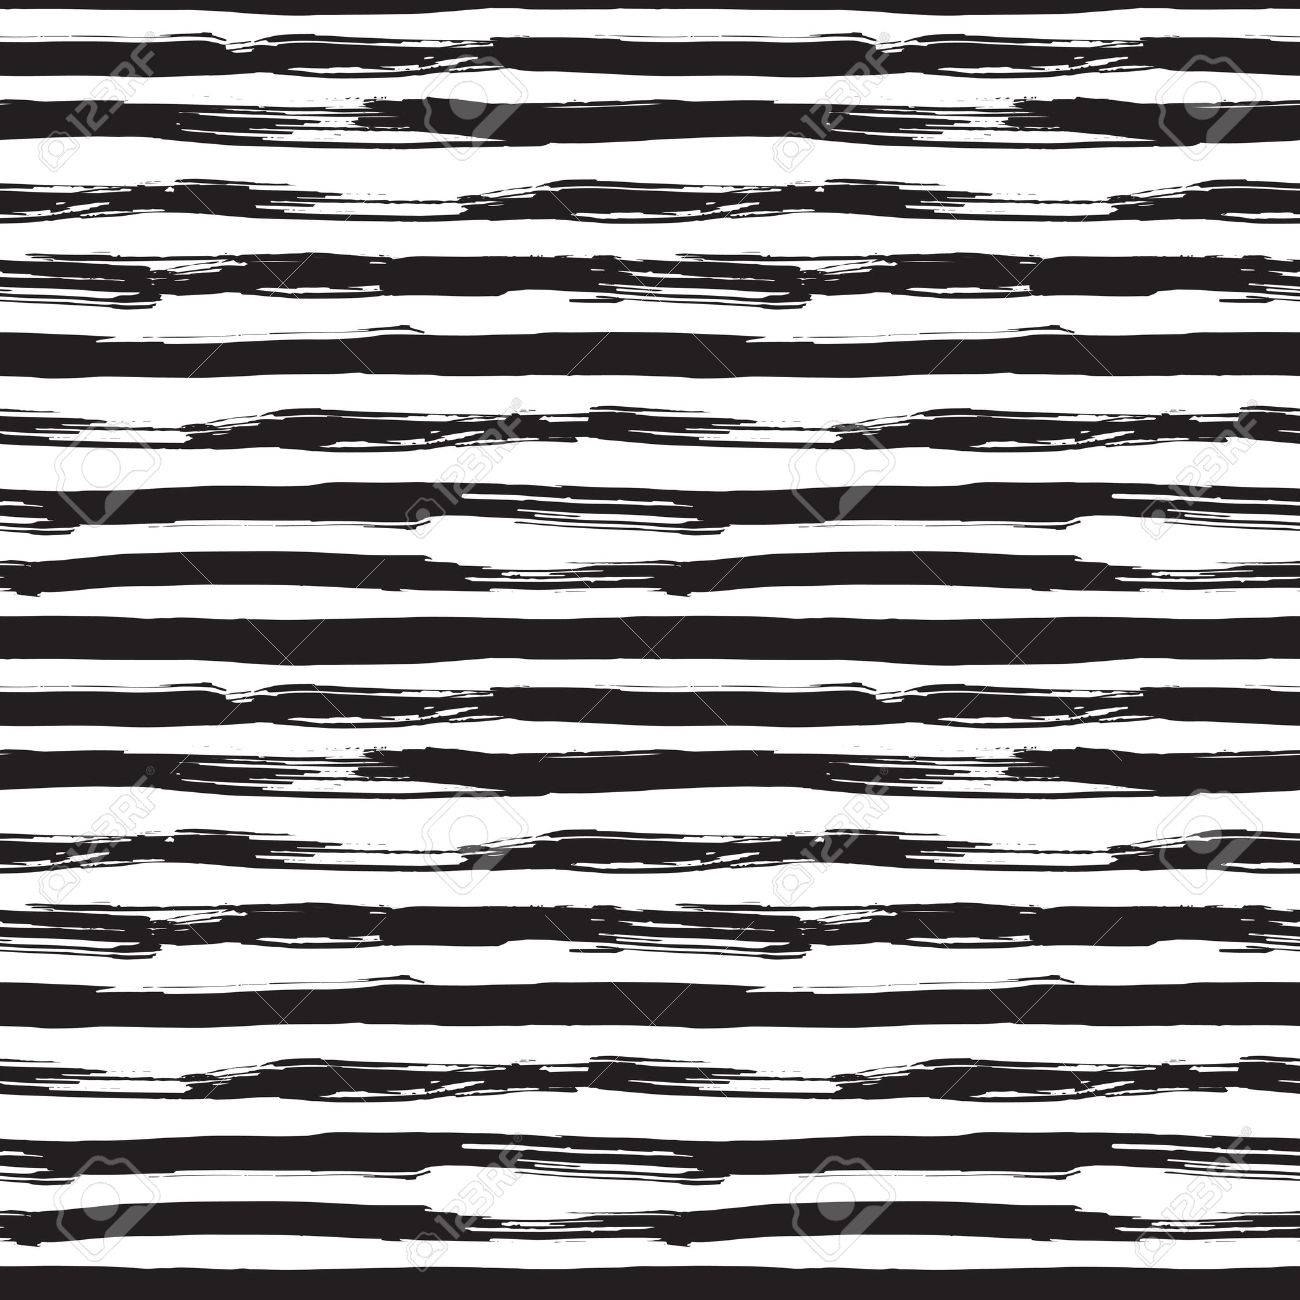 Vector seamless pattern with black brush strokes. Monochrome hand drawn texture. Modern graphic design made with ink. - 42286775